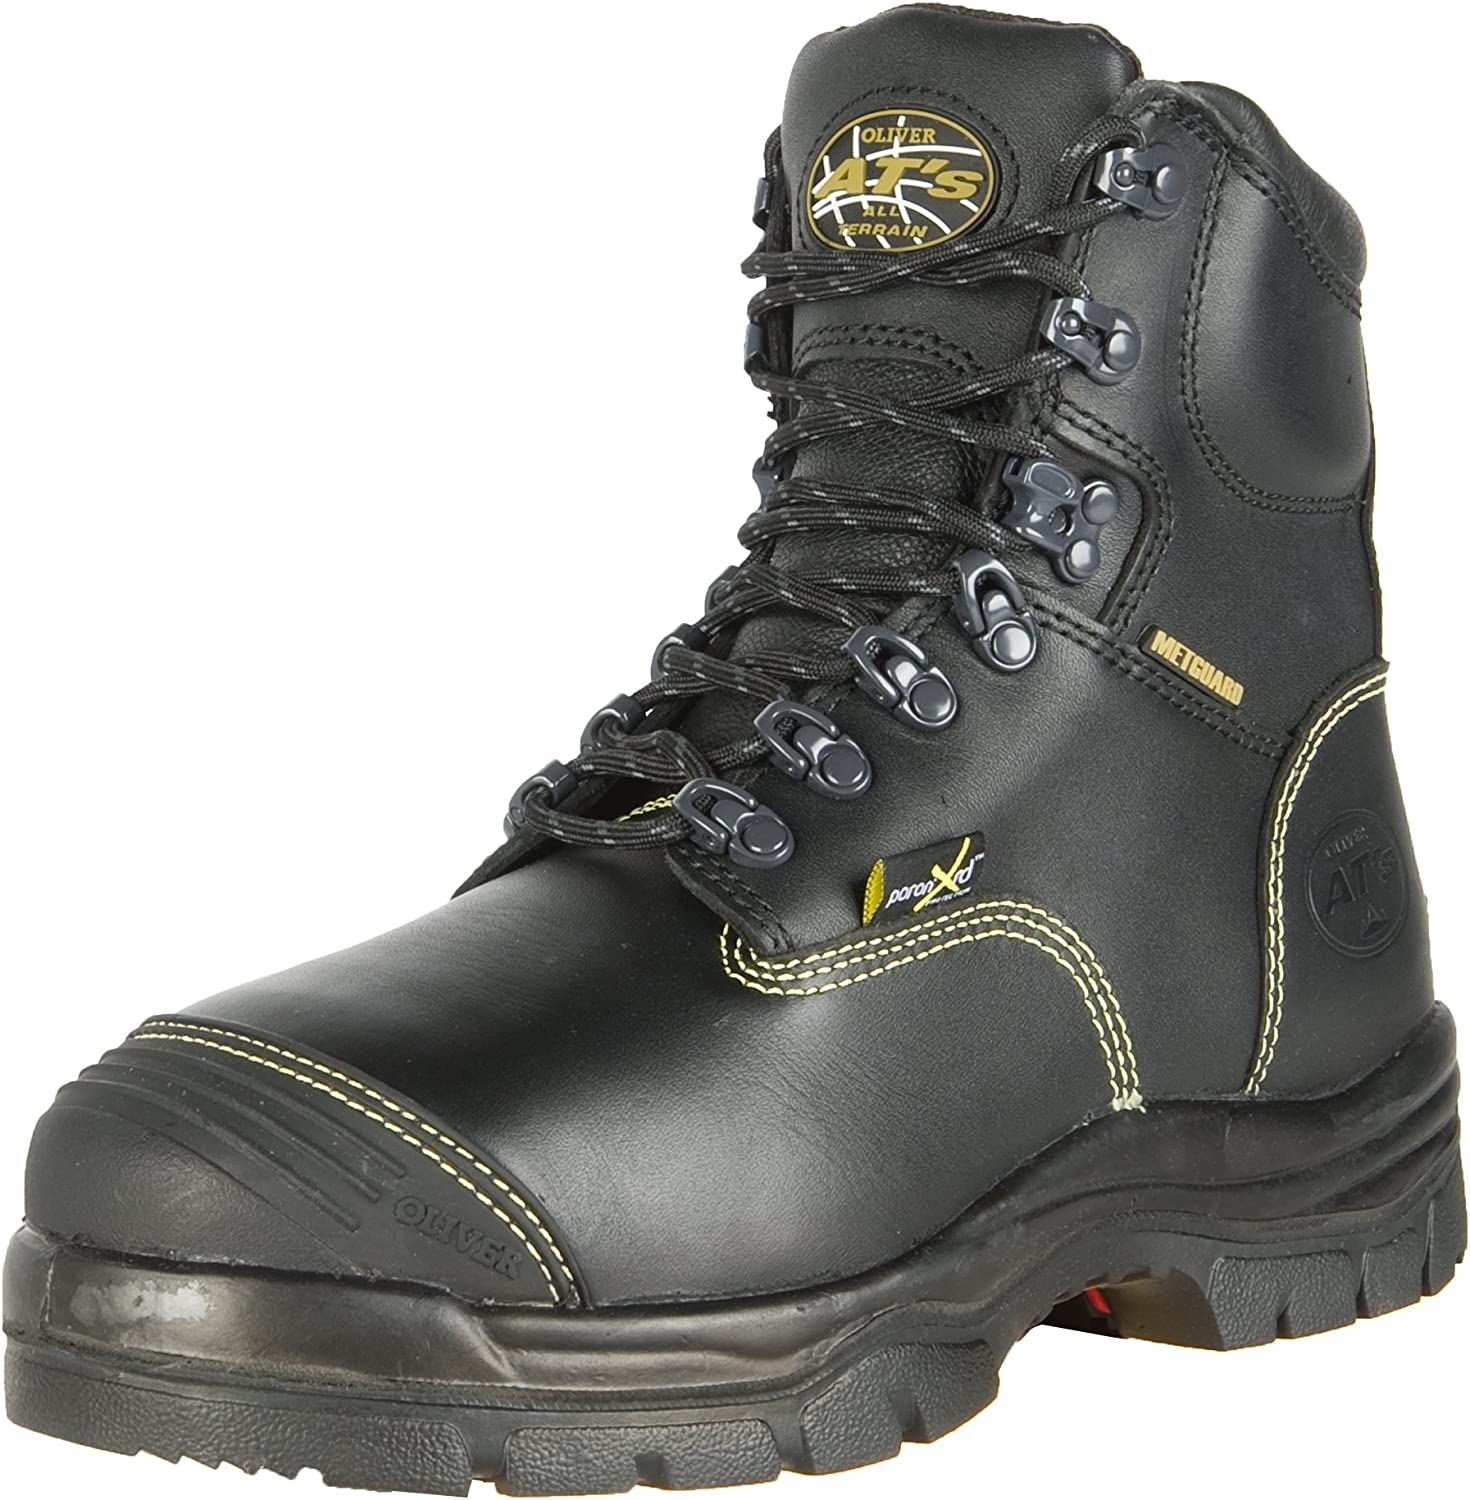 Leather Steel Toe Puncture-Resistant